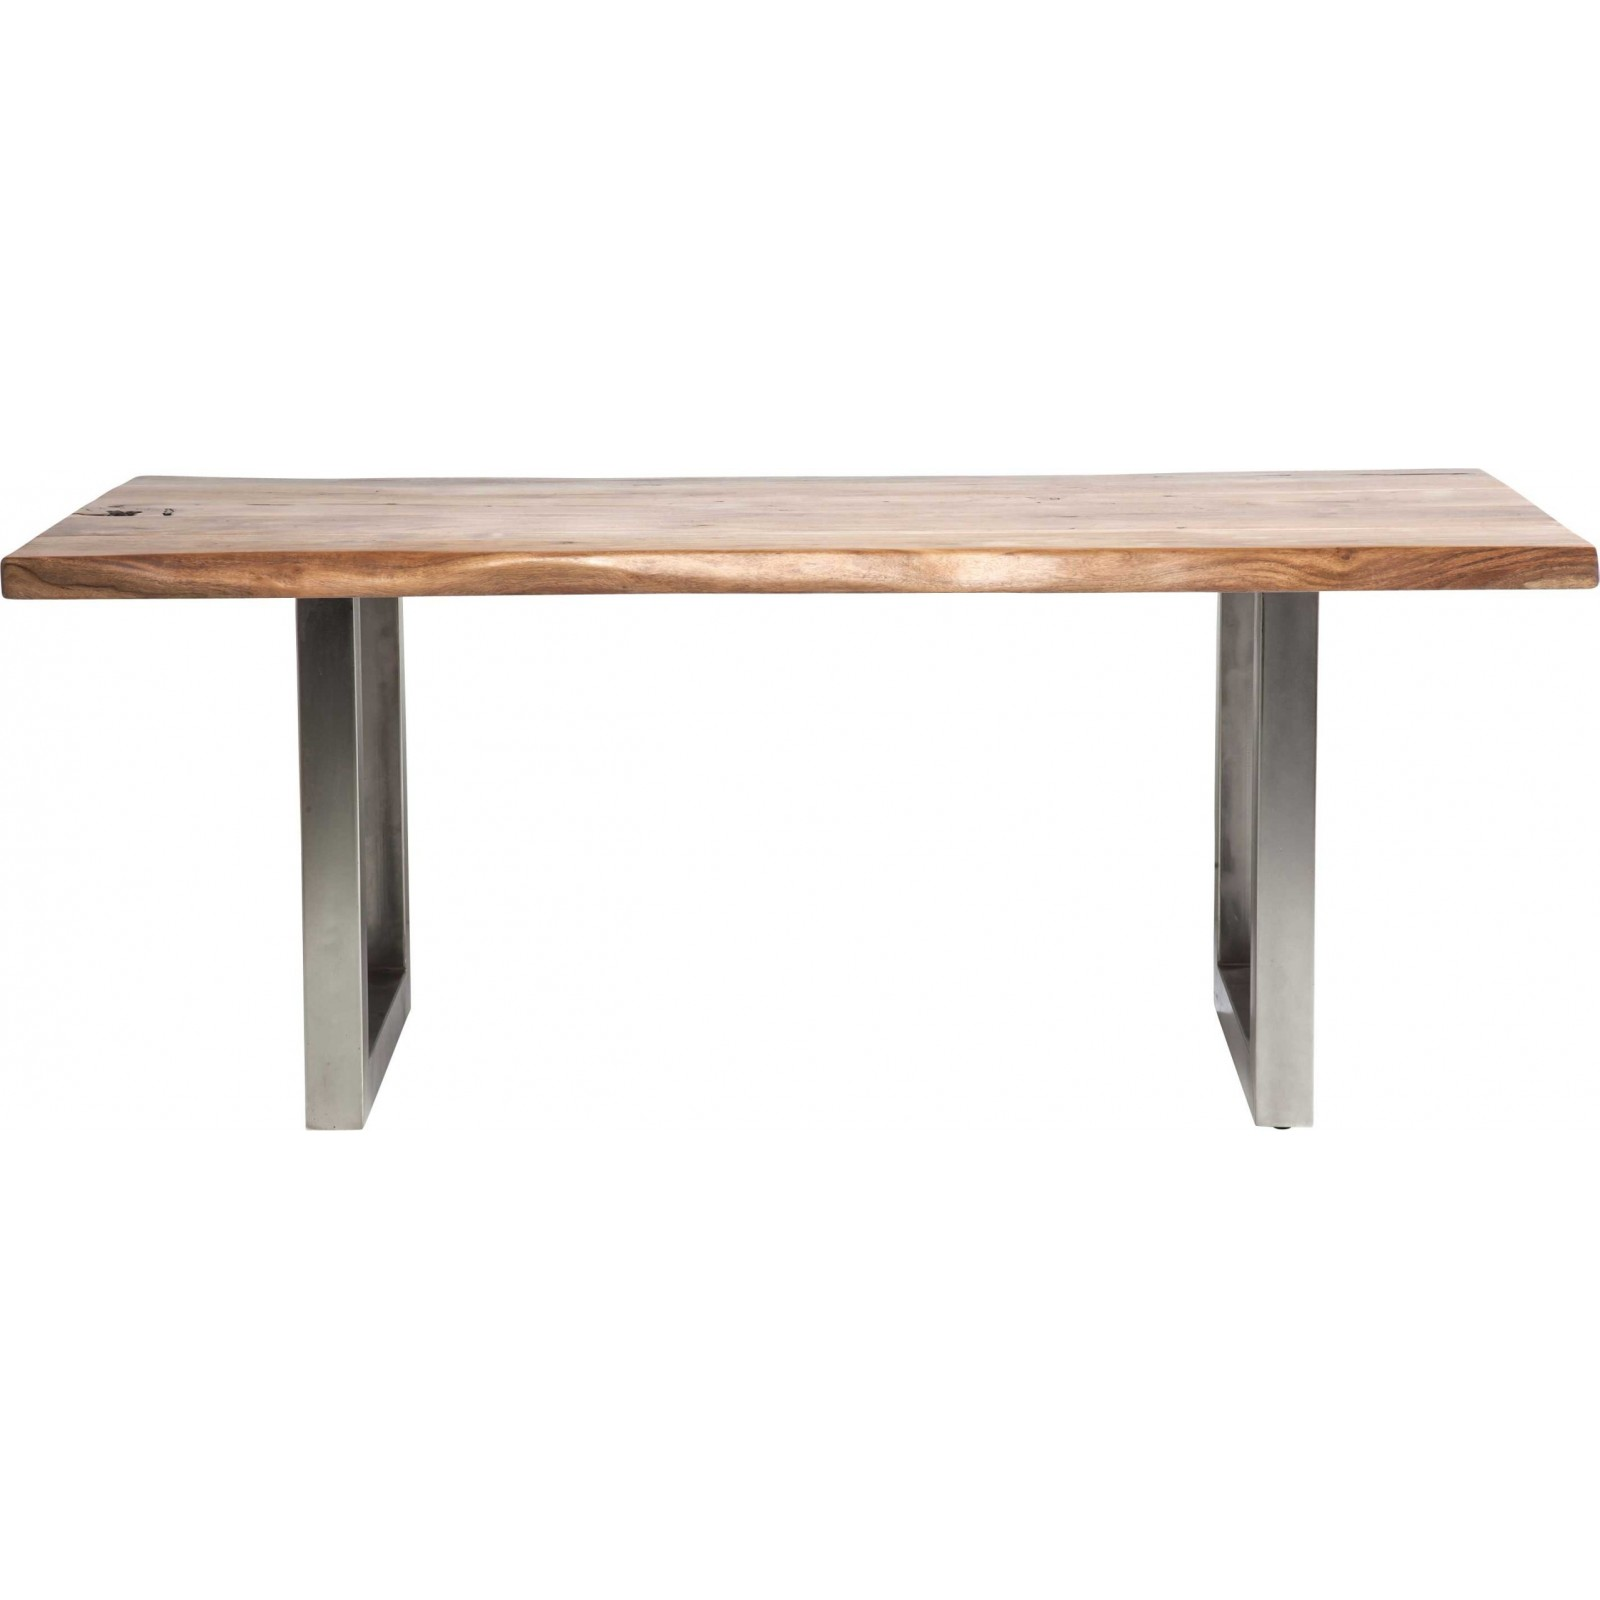 Table pure nature 195x100 cm kare design - Table kare design ...